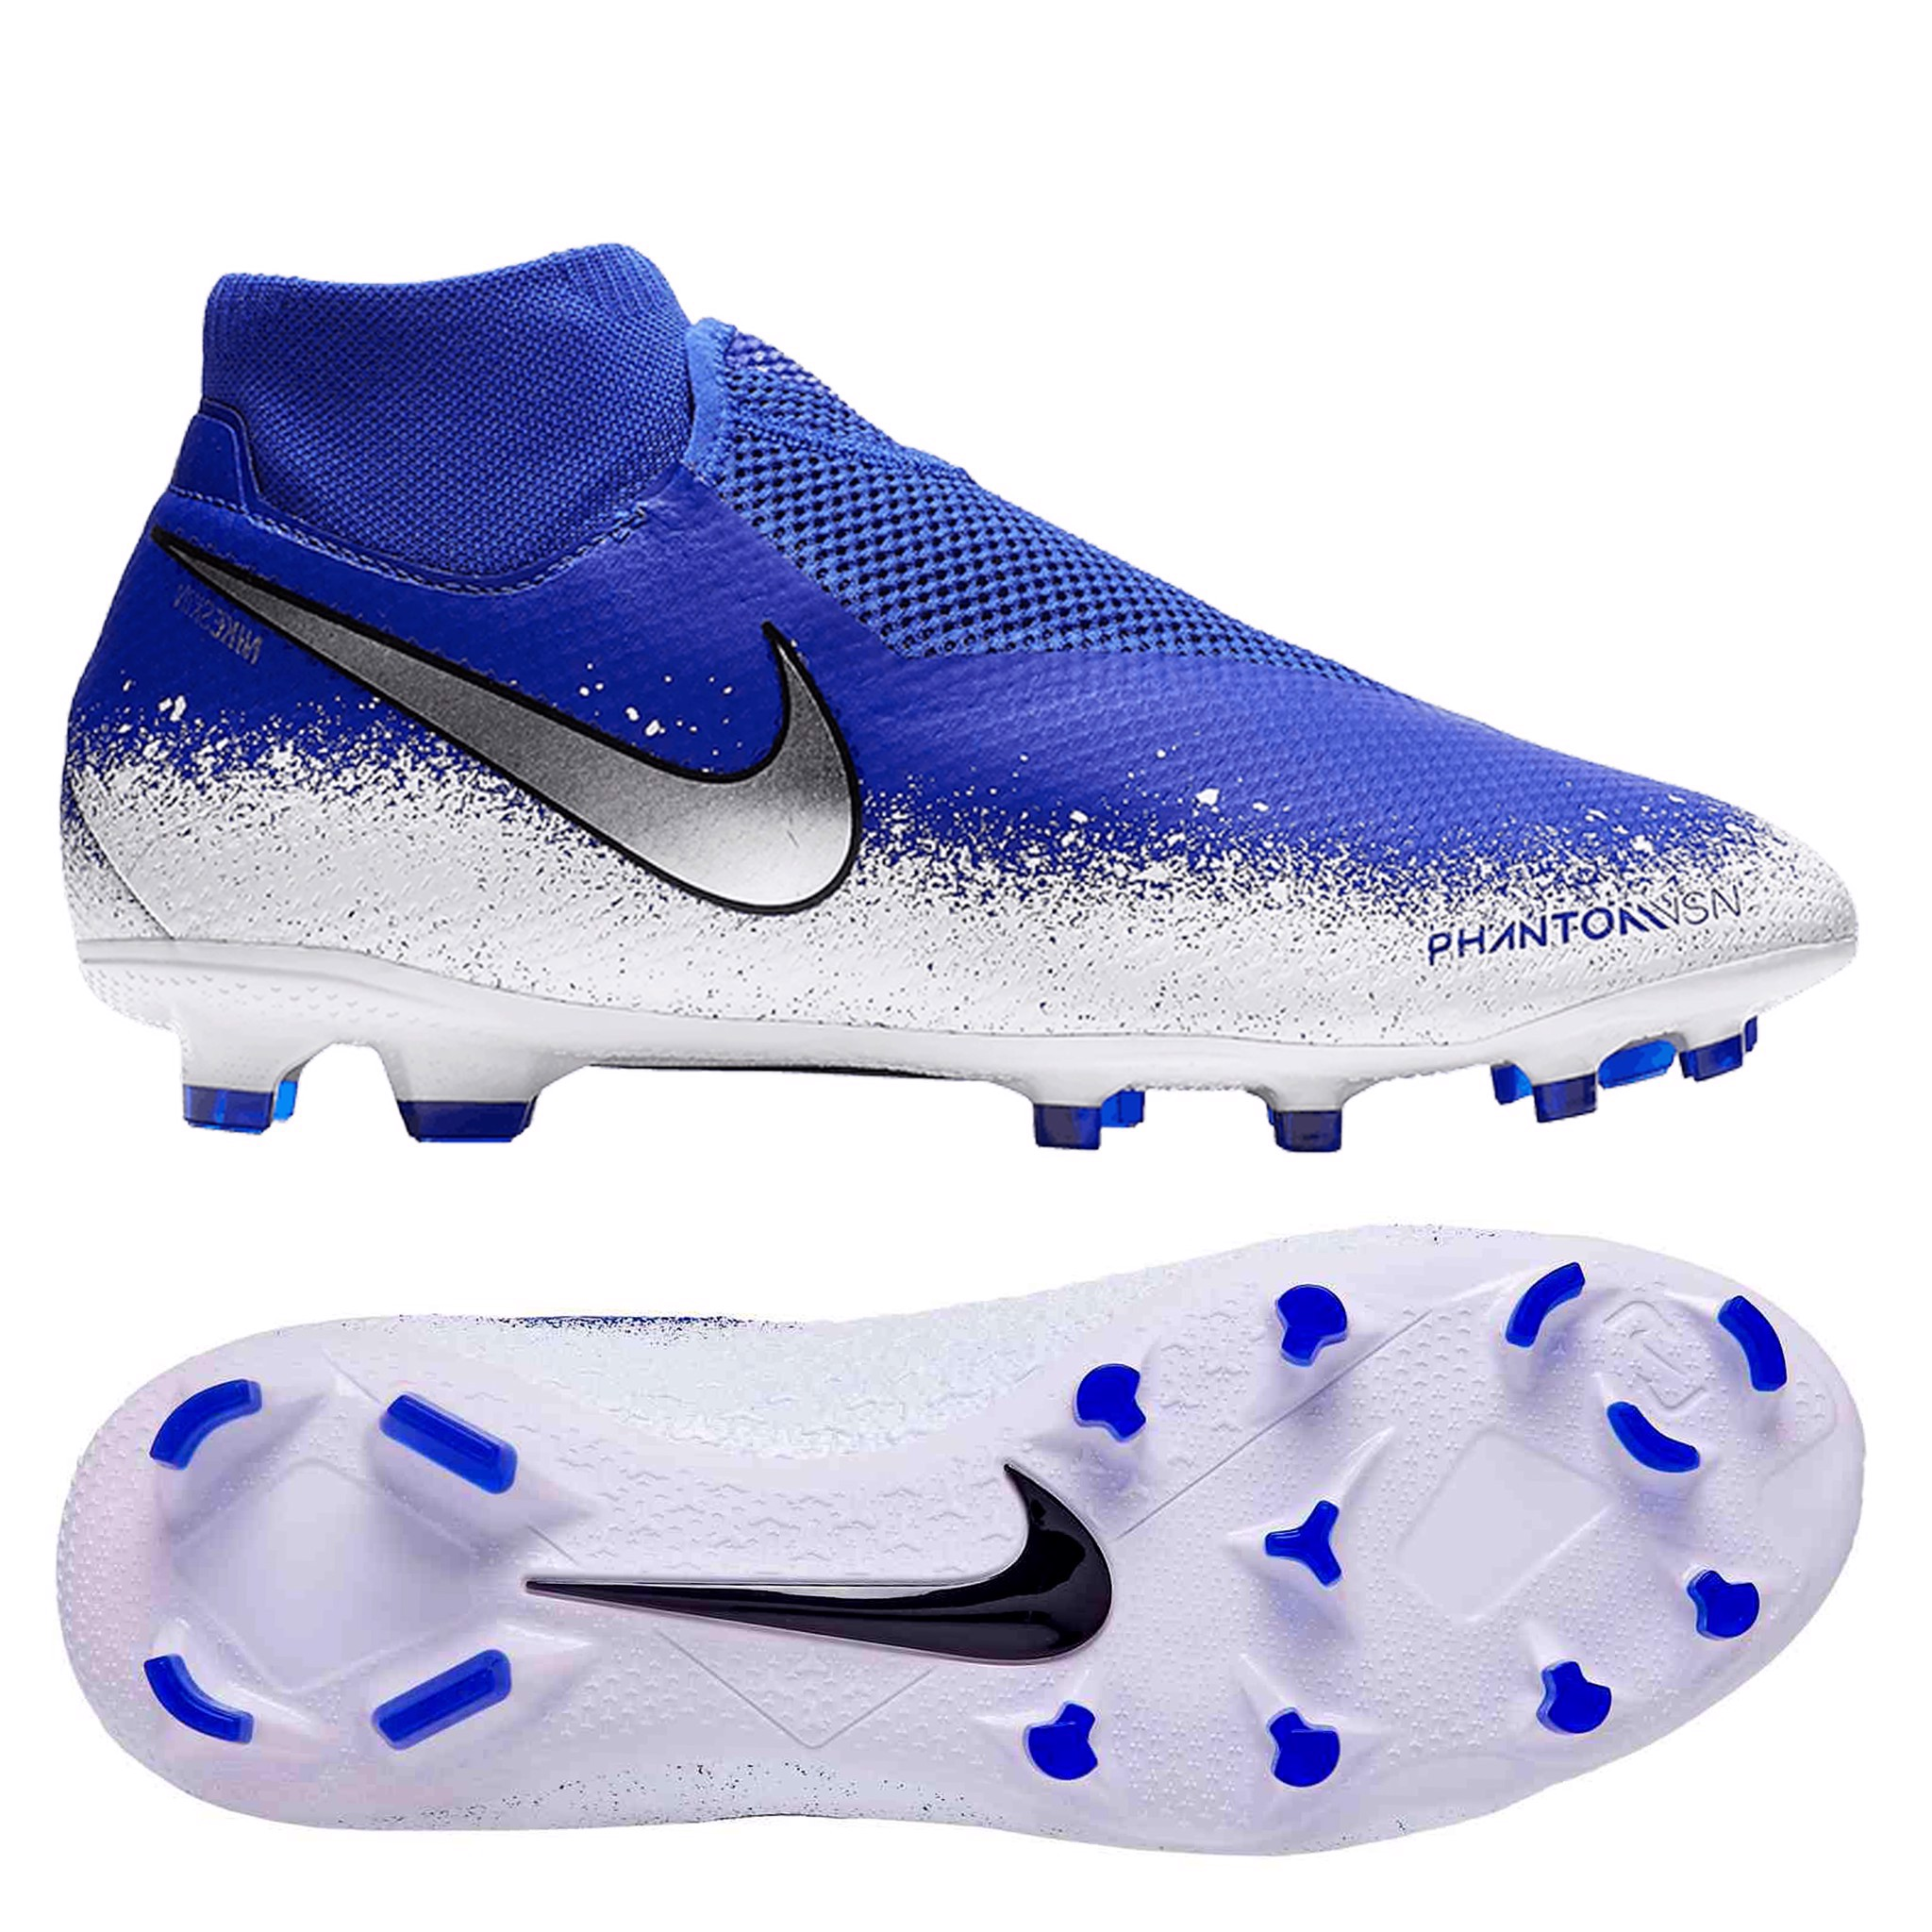 Nike Phantom Vision Pro FG EUPHORIA - Racer Blue White Chrome